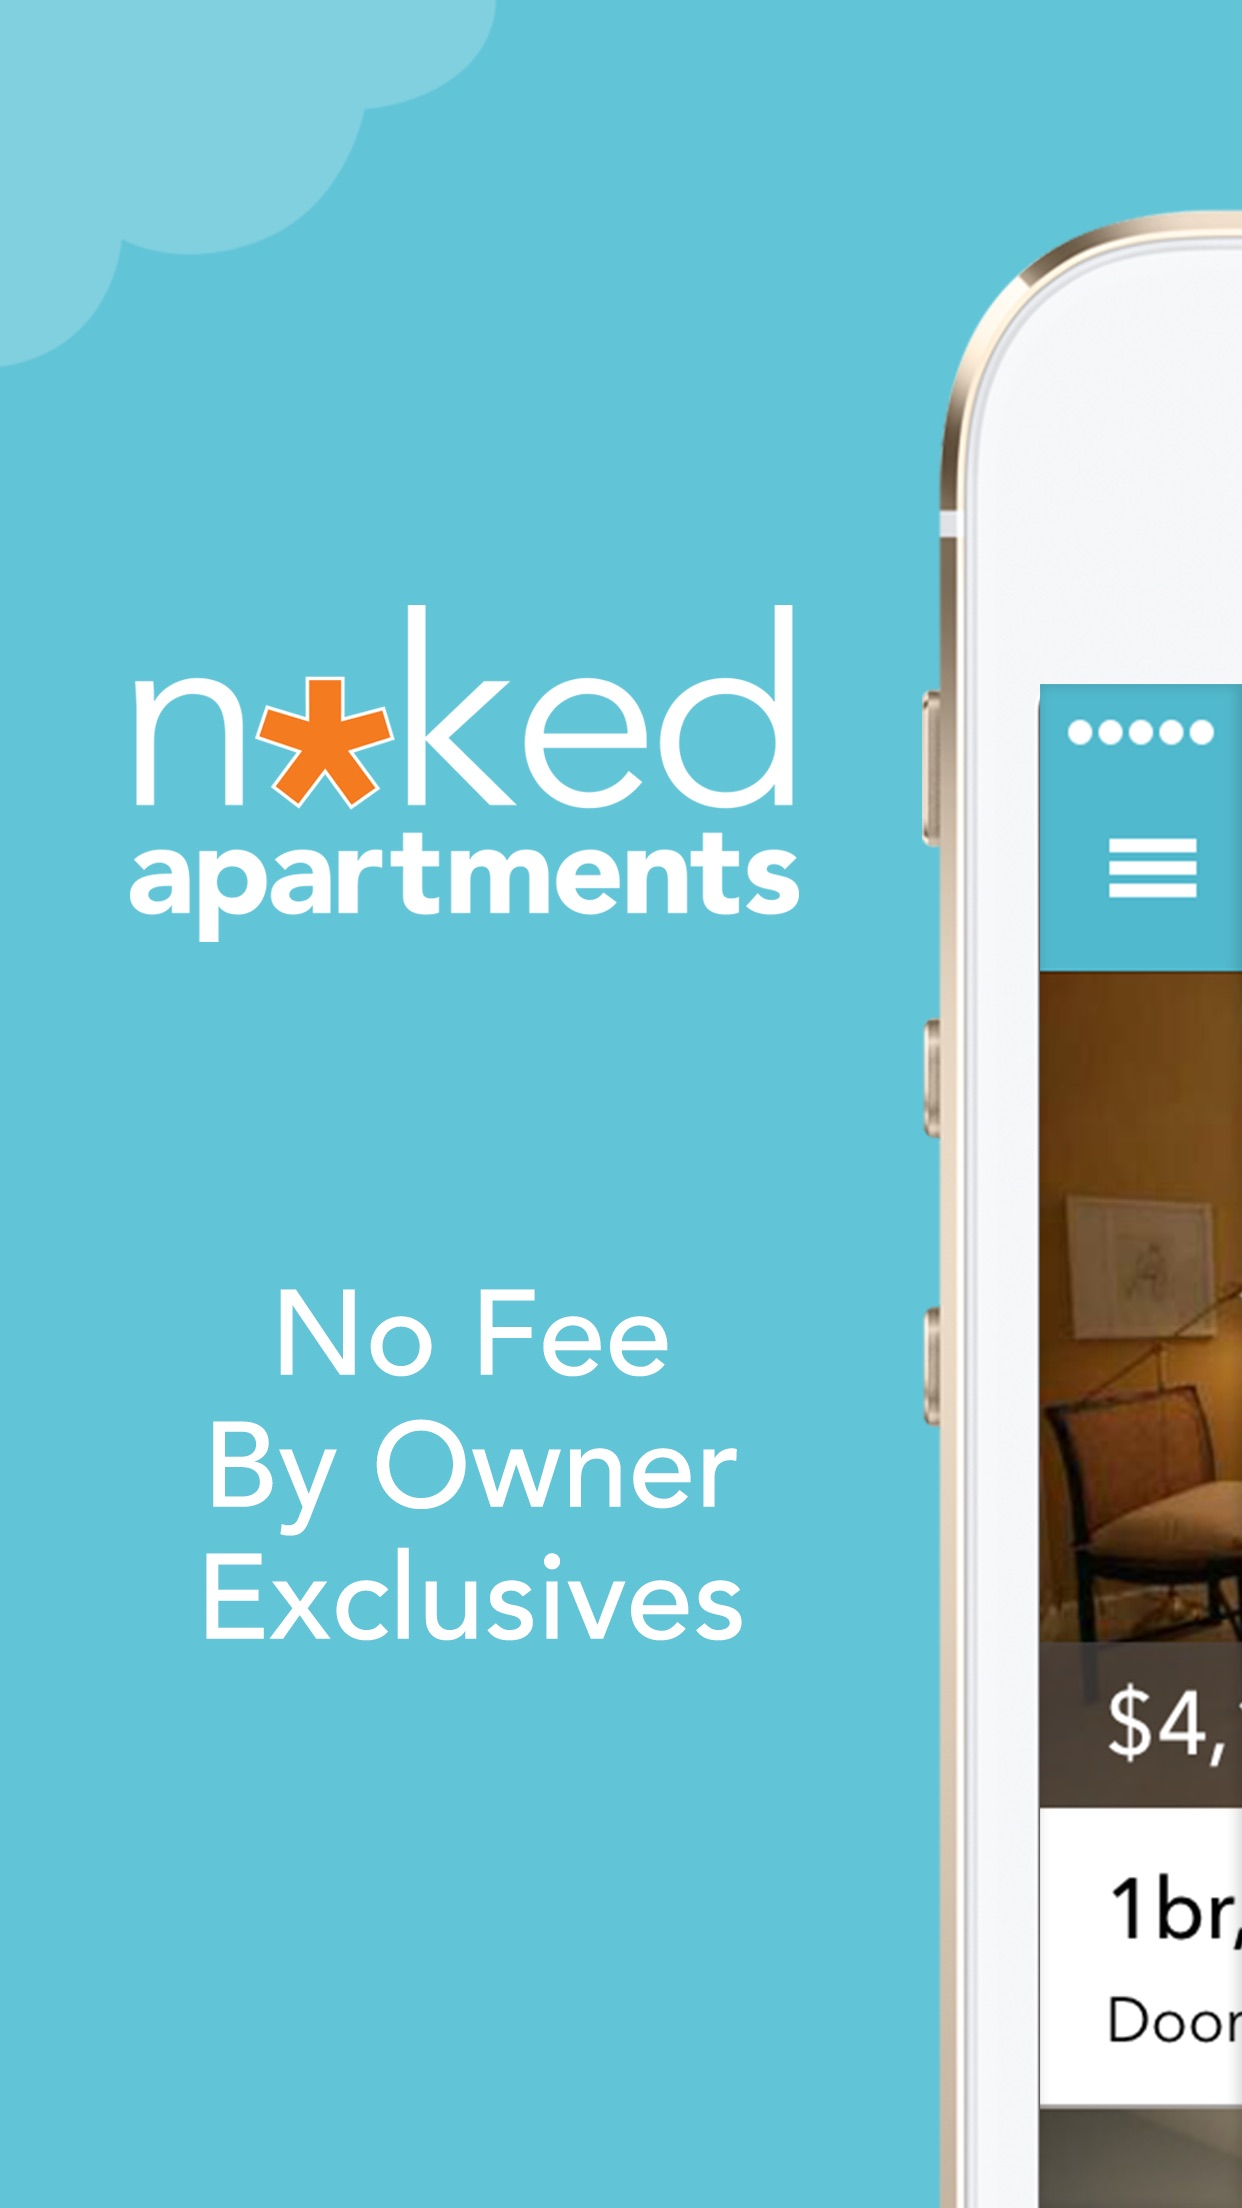 NYC Apartments for Rent - No Fee, By Owner, Maps Screenshot